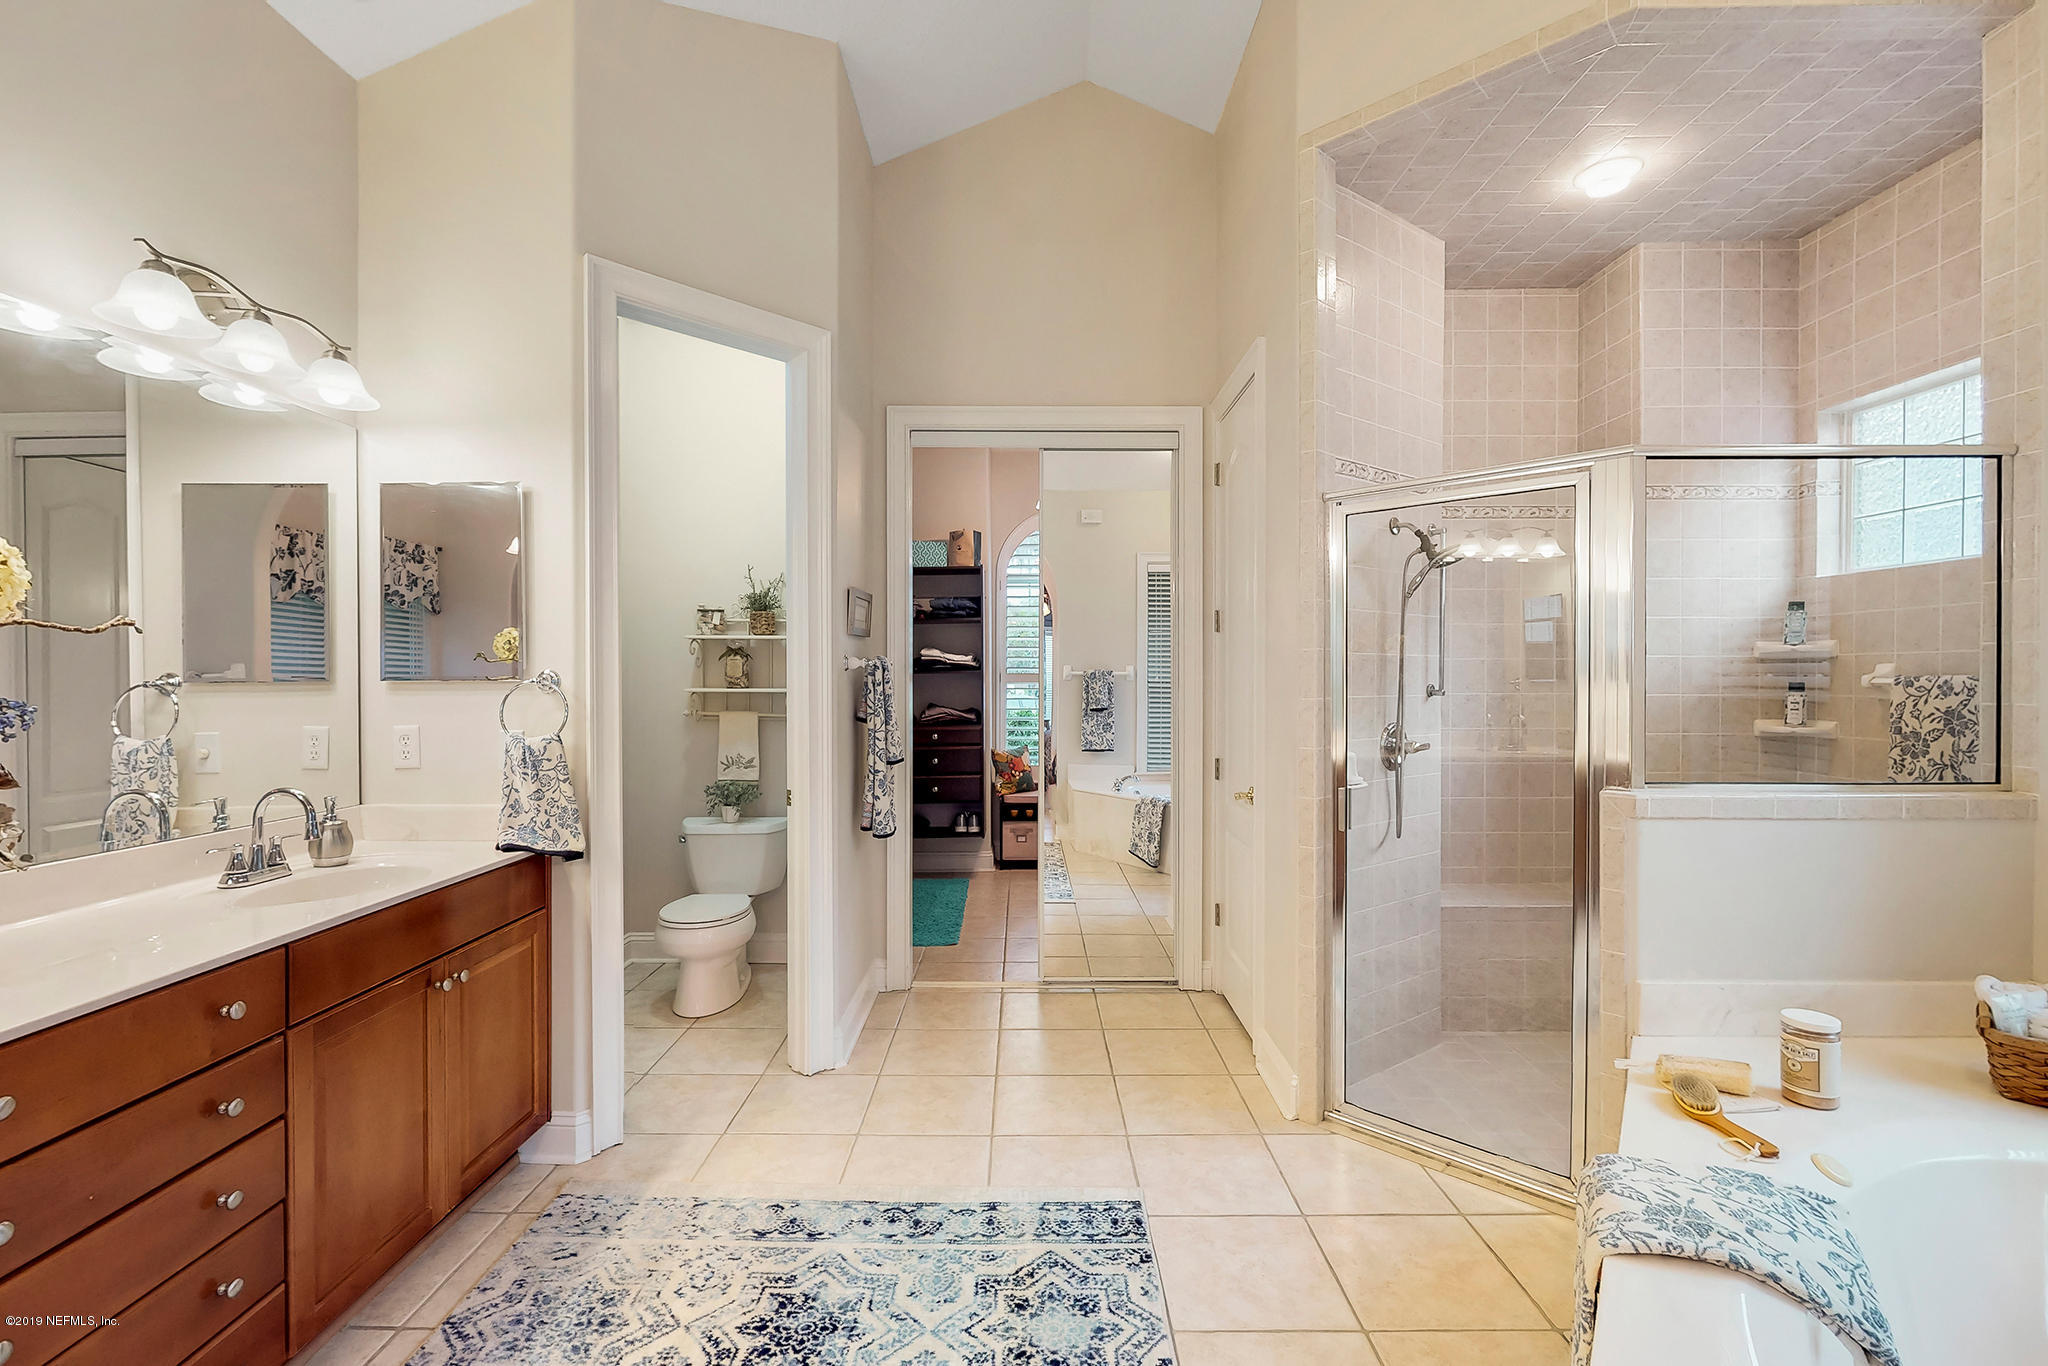 1791 HIDEAWAY HILL, MIDDLEBURG, FLORIDA 32068, 5 Bedrooms Bedrooms, ,5 BathroomsBathrooms,Residential - single family,For sale,HIDEAWAY HILL,1019443